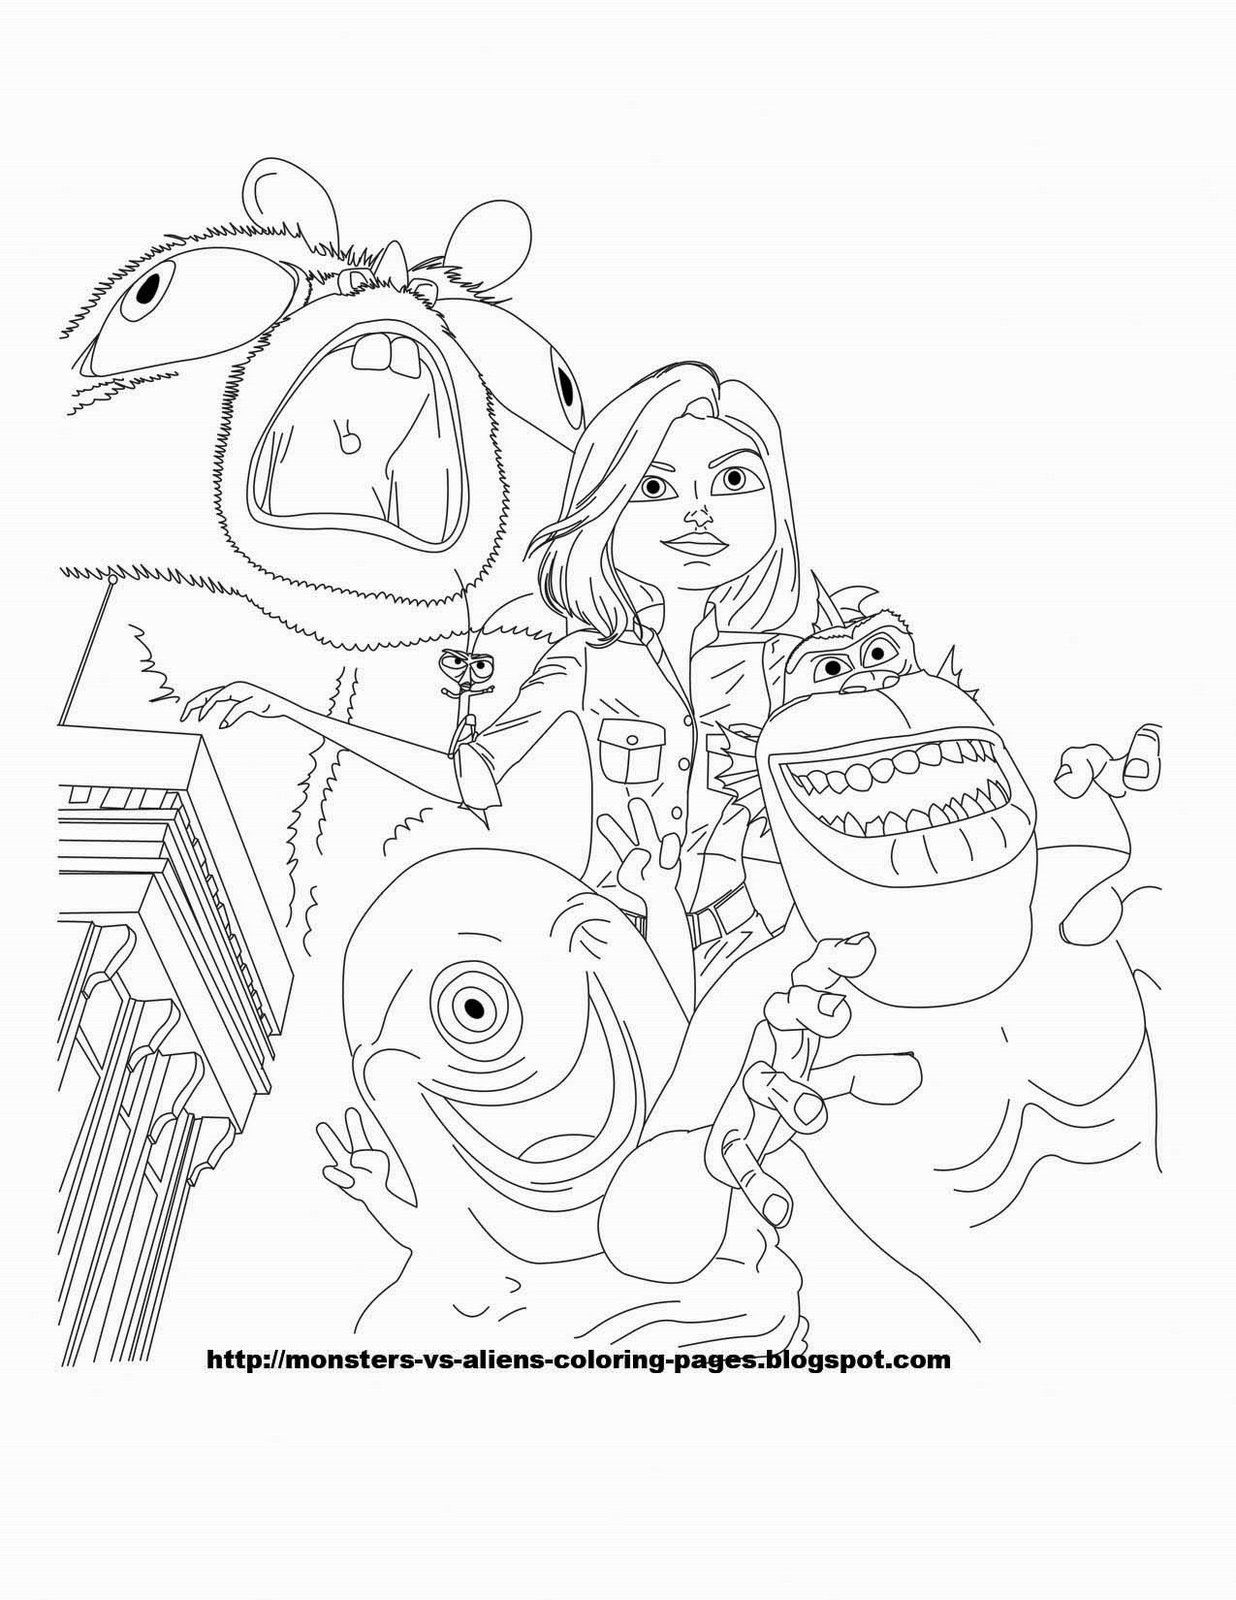 ginormica coloring pages - photo#15